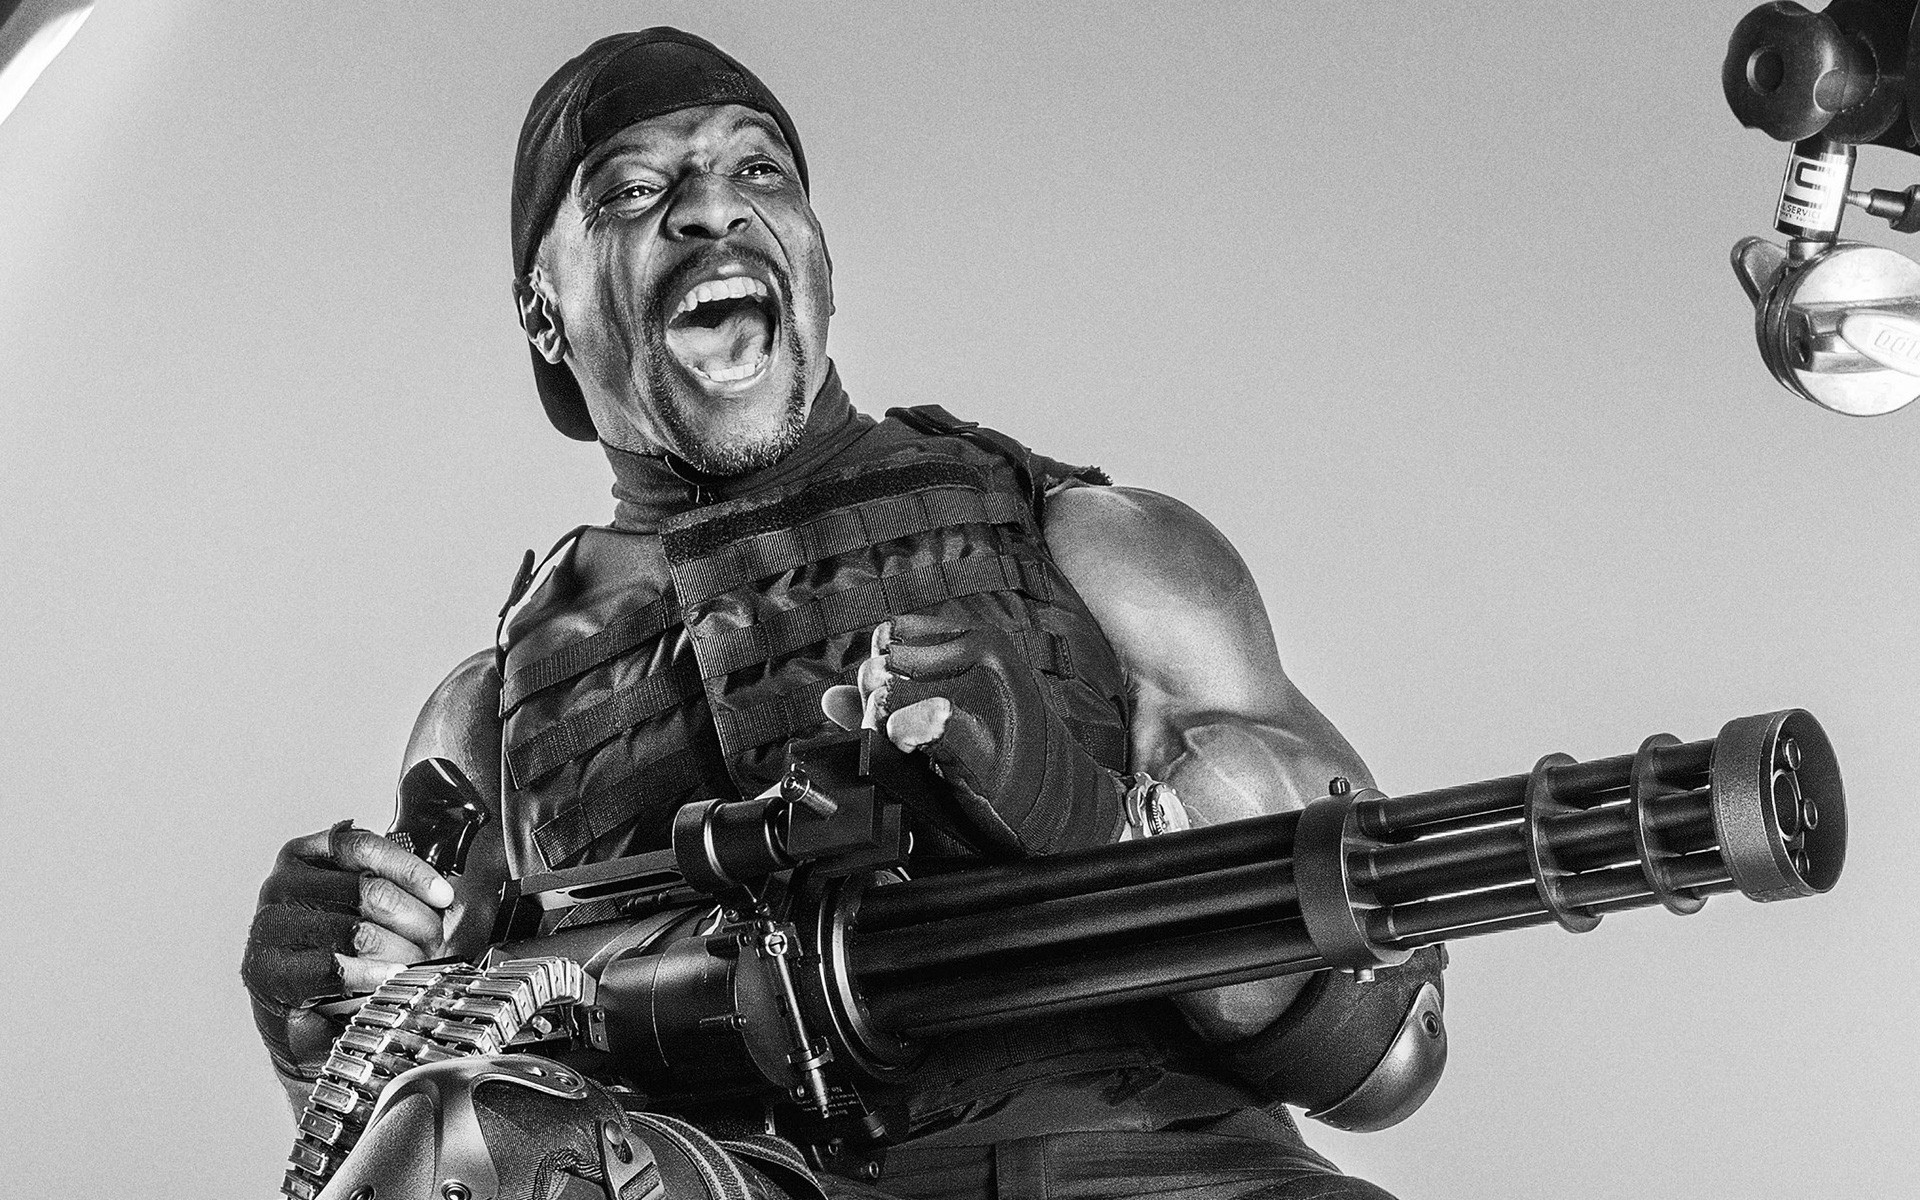 terry crews the expendables 3. android wallpapers for free.